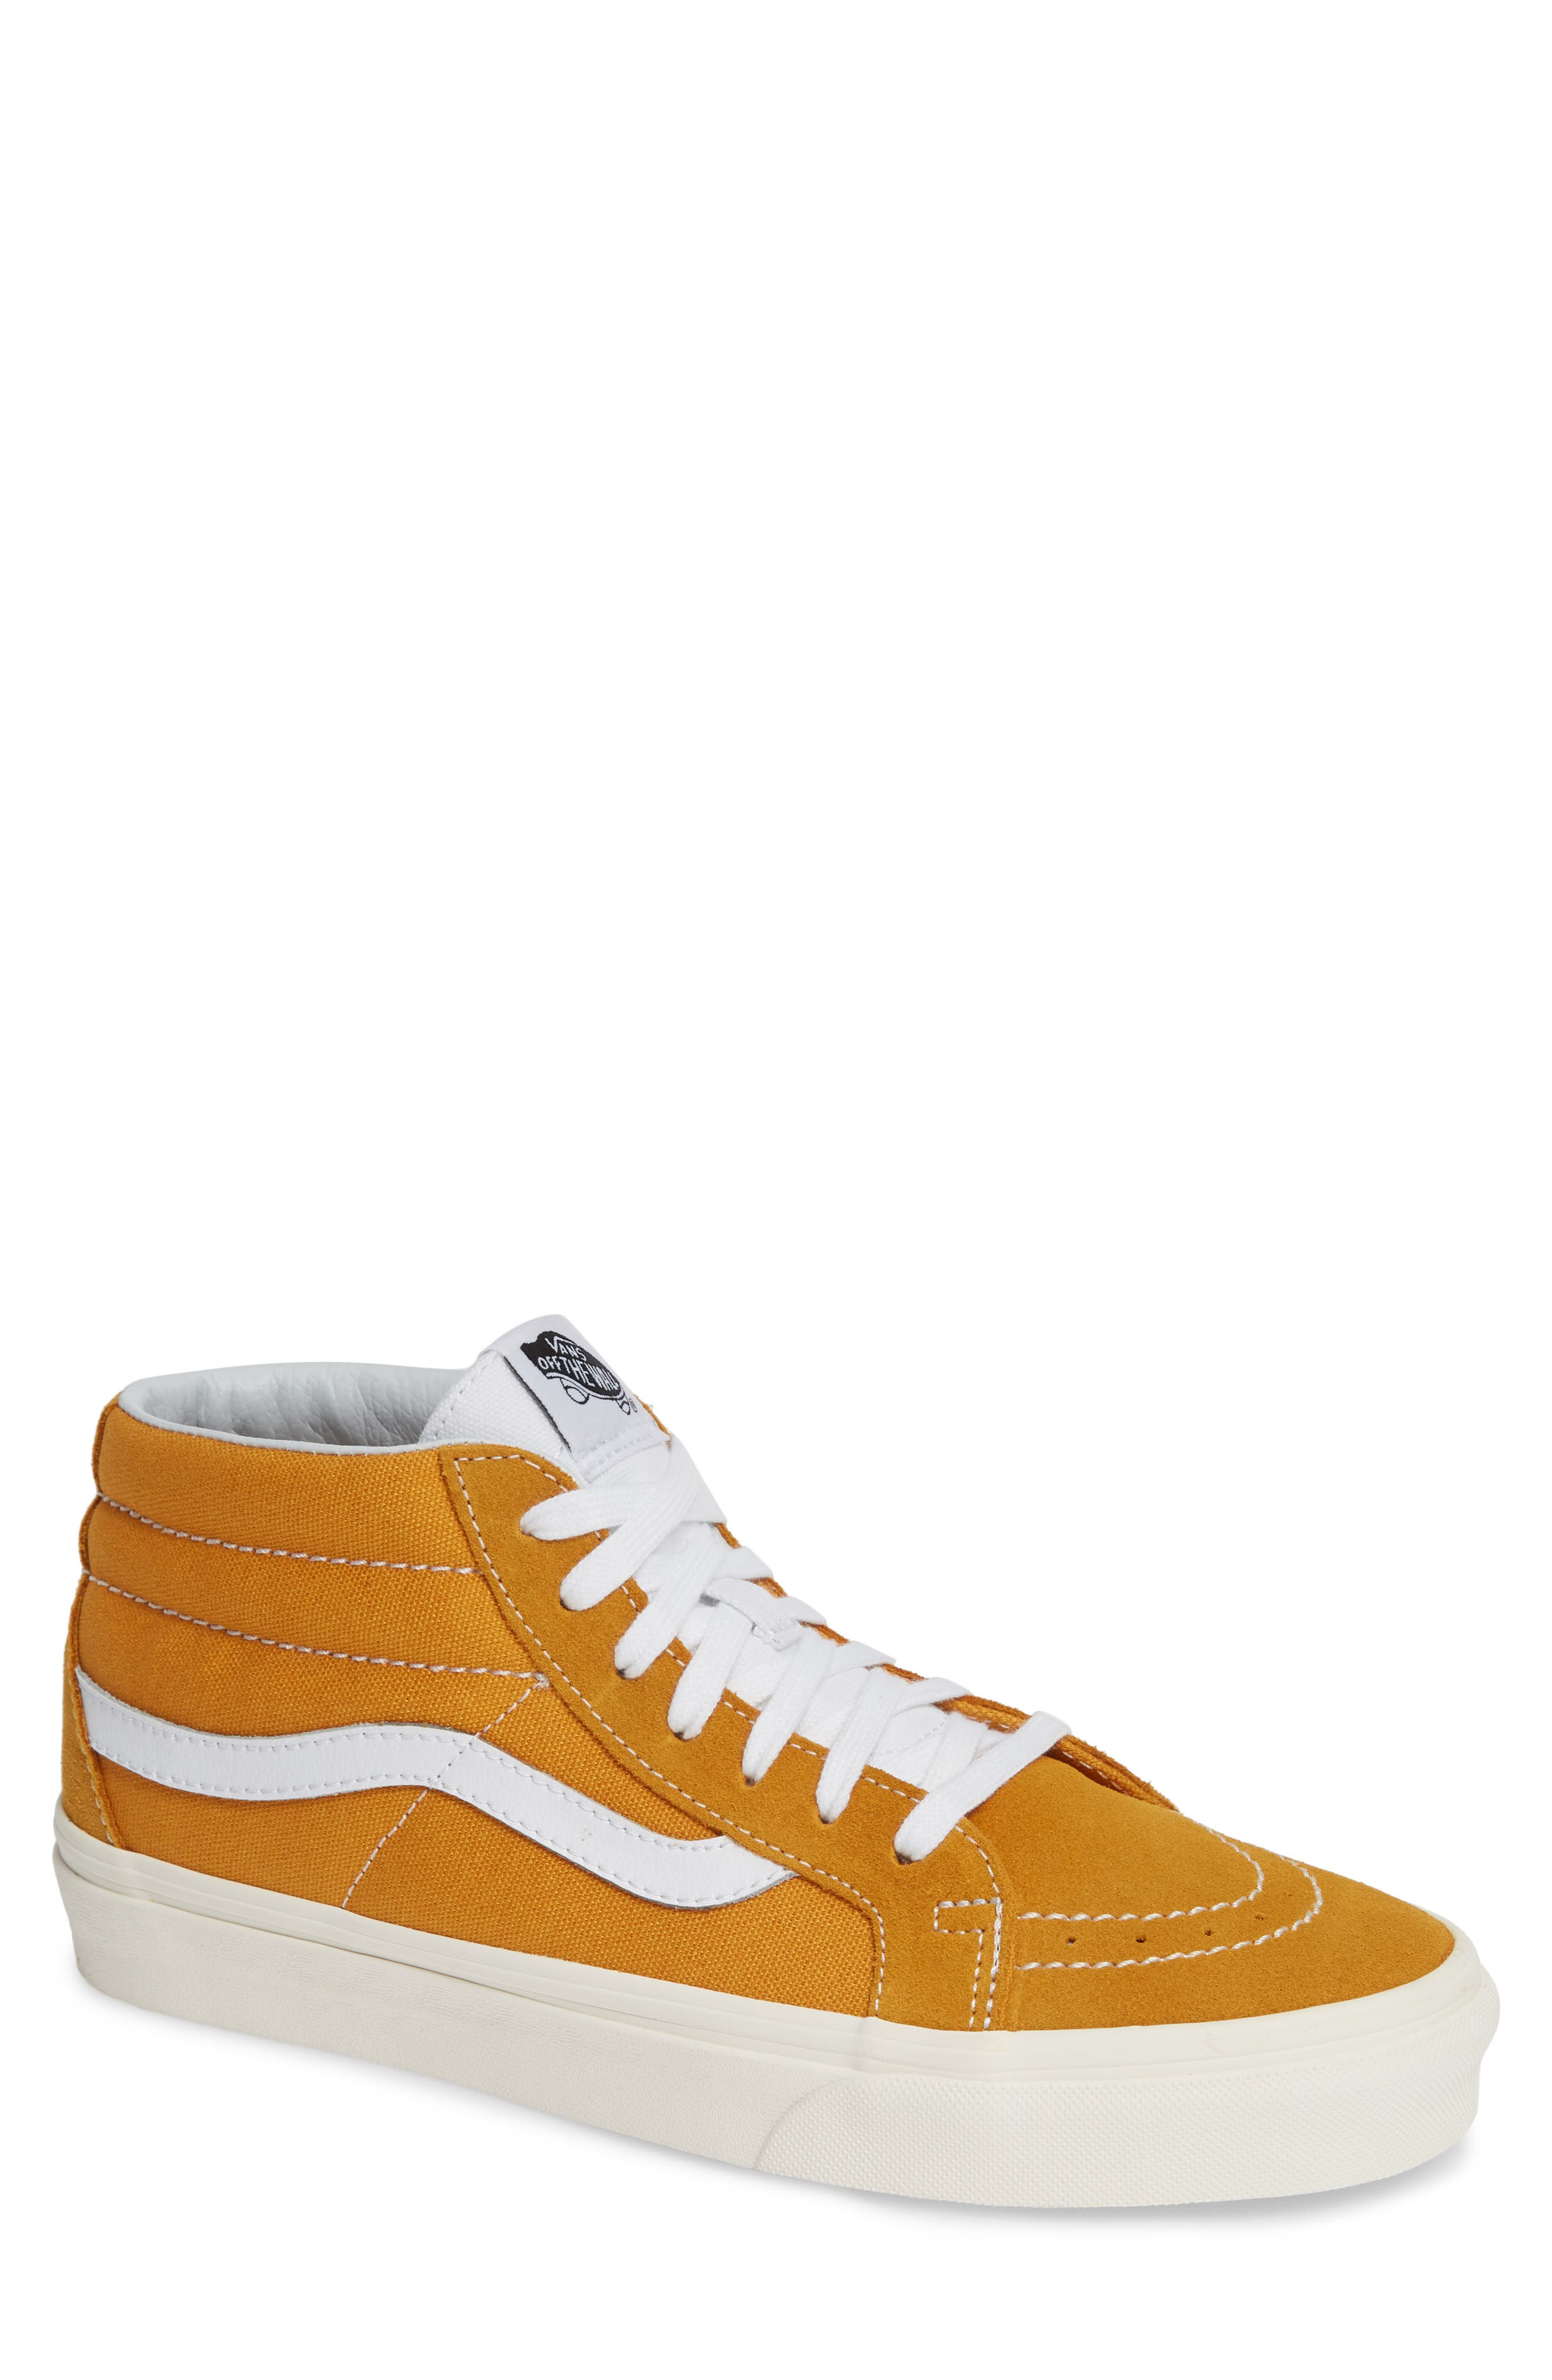 Sk8-Mid Reissue Sneaker,                         Main,                         color, SUNFLOWER CANVAS/SUEDE